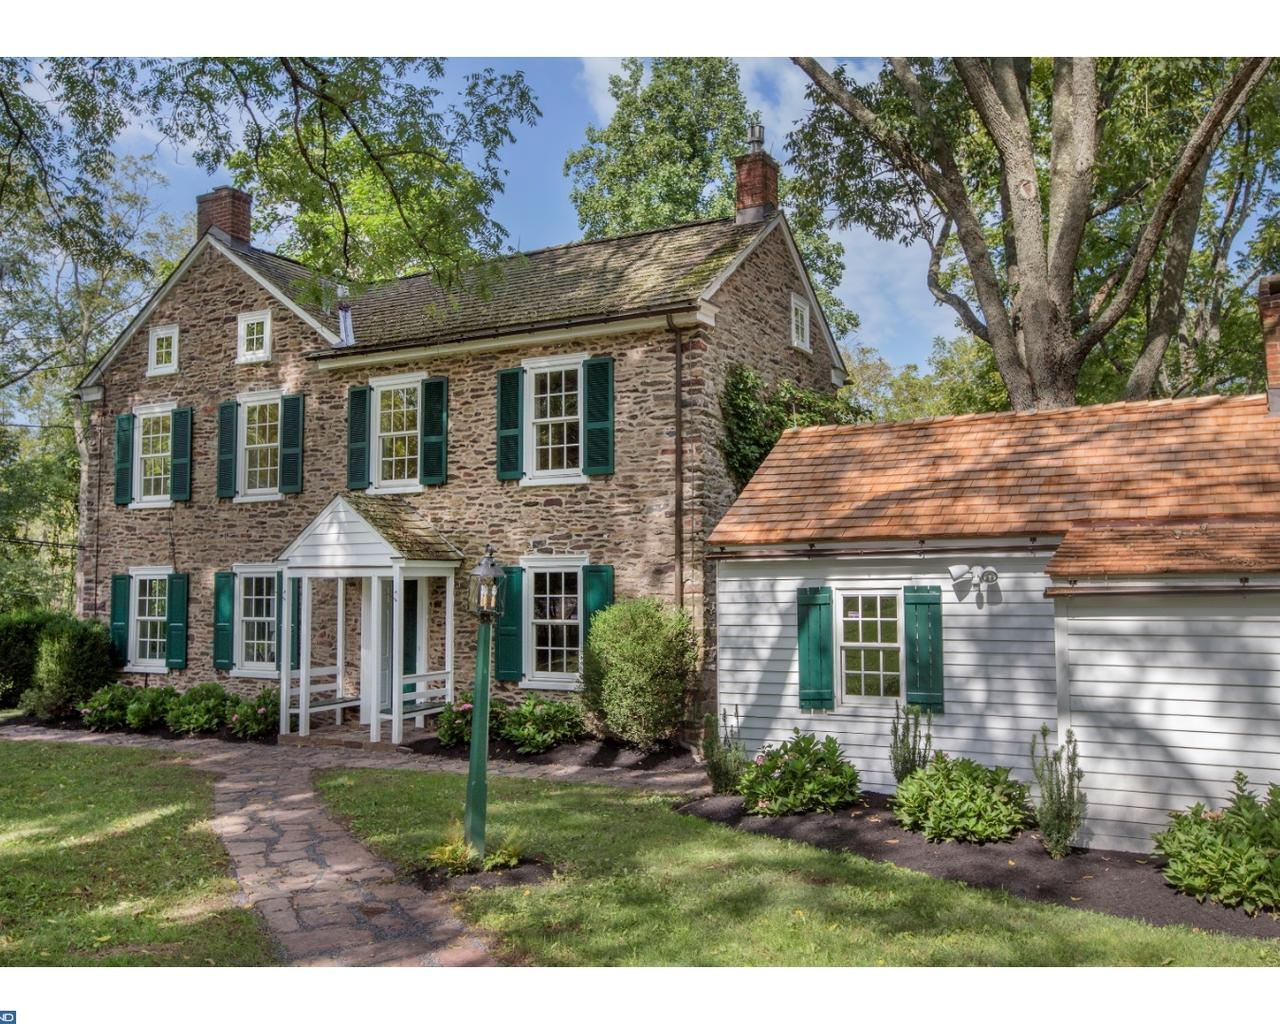 Cozy Homes For Sale In Greater Philadelphia Everyhome